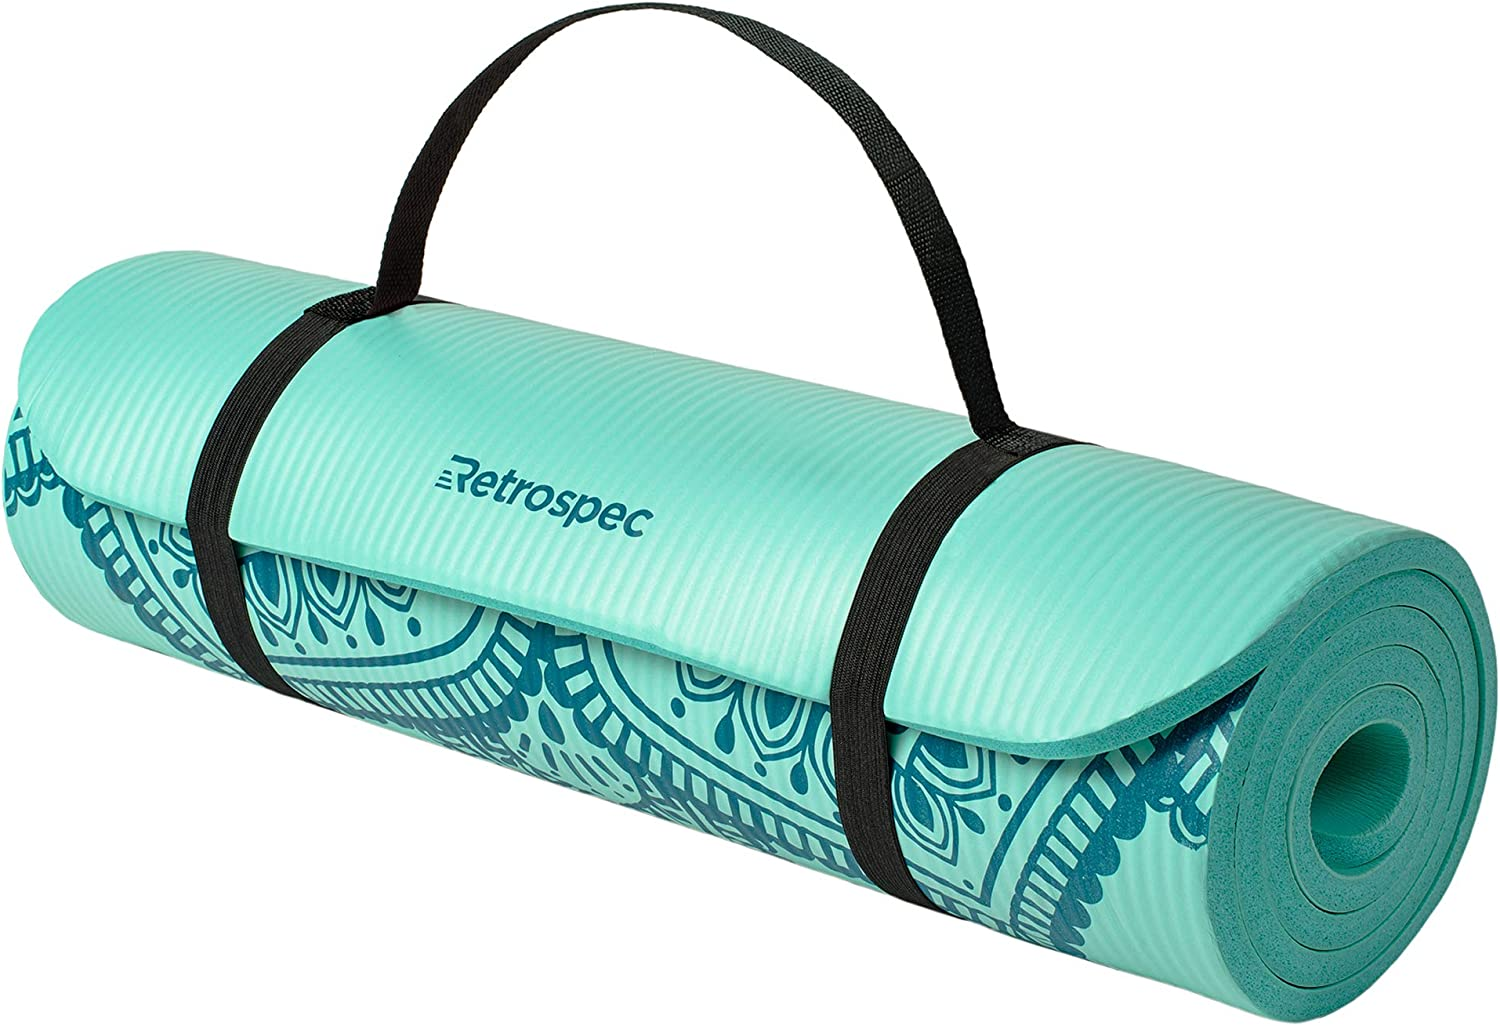 Retrospec Solana Yoga Mat 1 1 2 Thick w Nylon Strap for Men Women – Non Slip Excercise Mat for Yoga, Pilates, Stretching, Floor Fitness Workouts